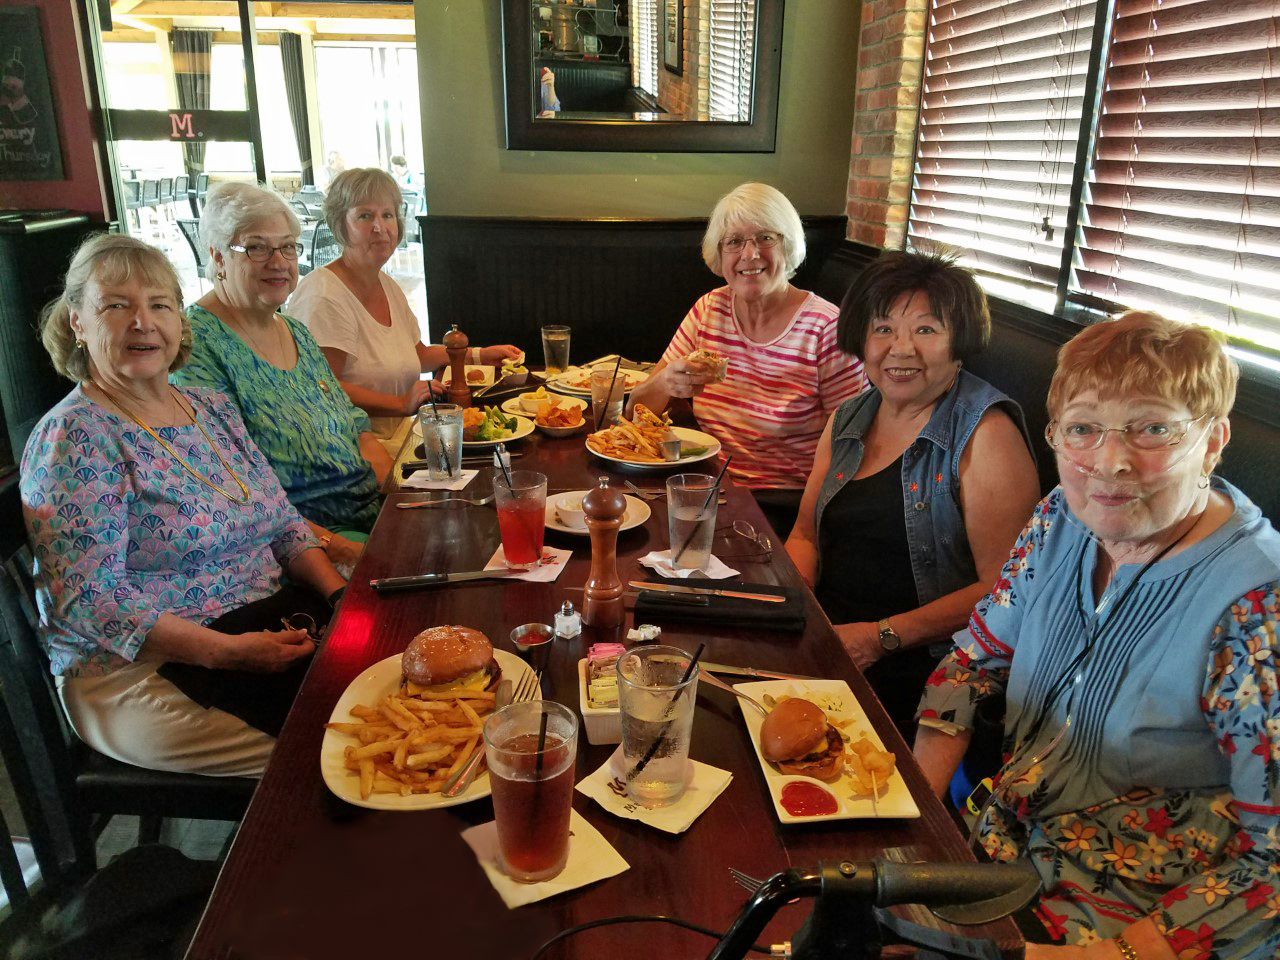 Mom lunching with friends, Apr 2018